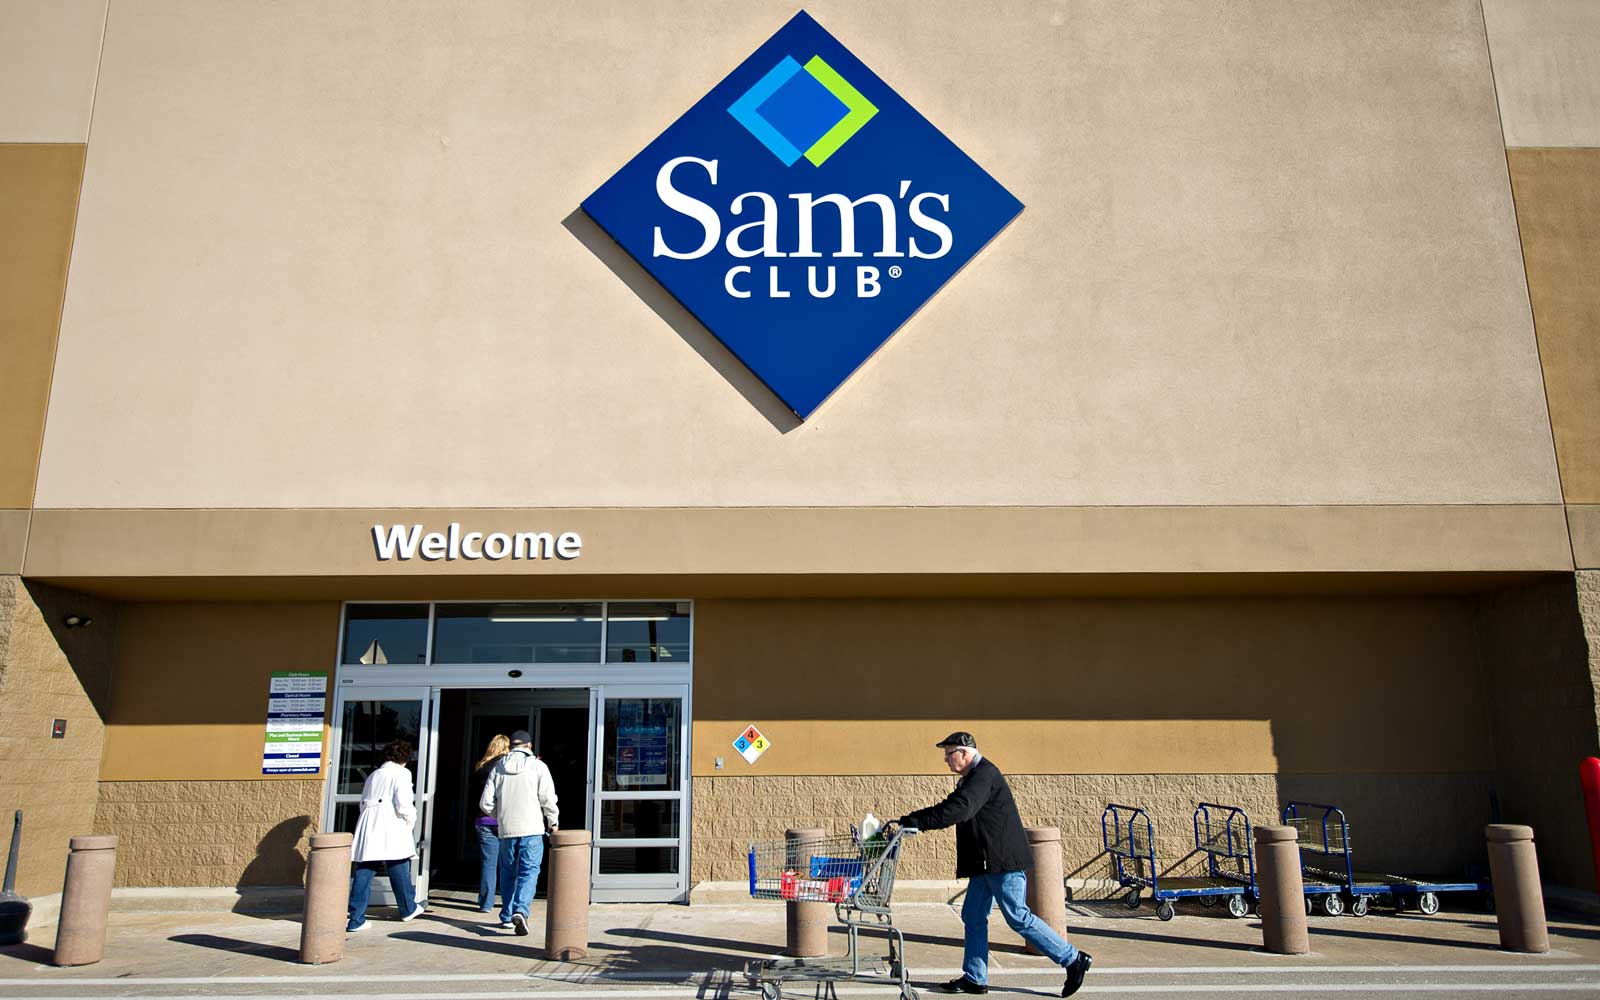 Here's How You Can Shop at Sam's Club If You're Not a Member